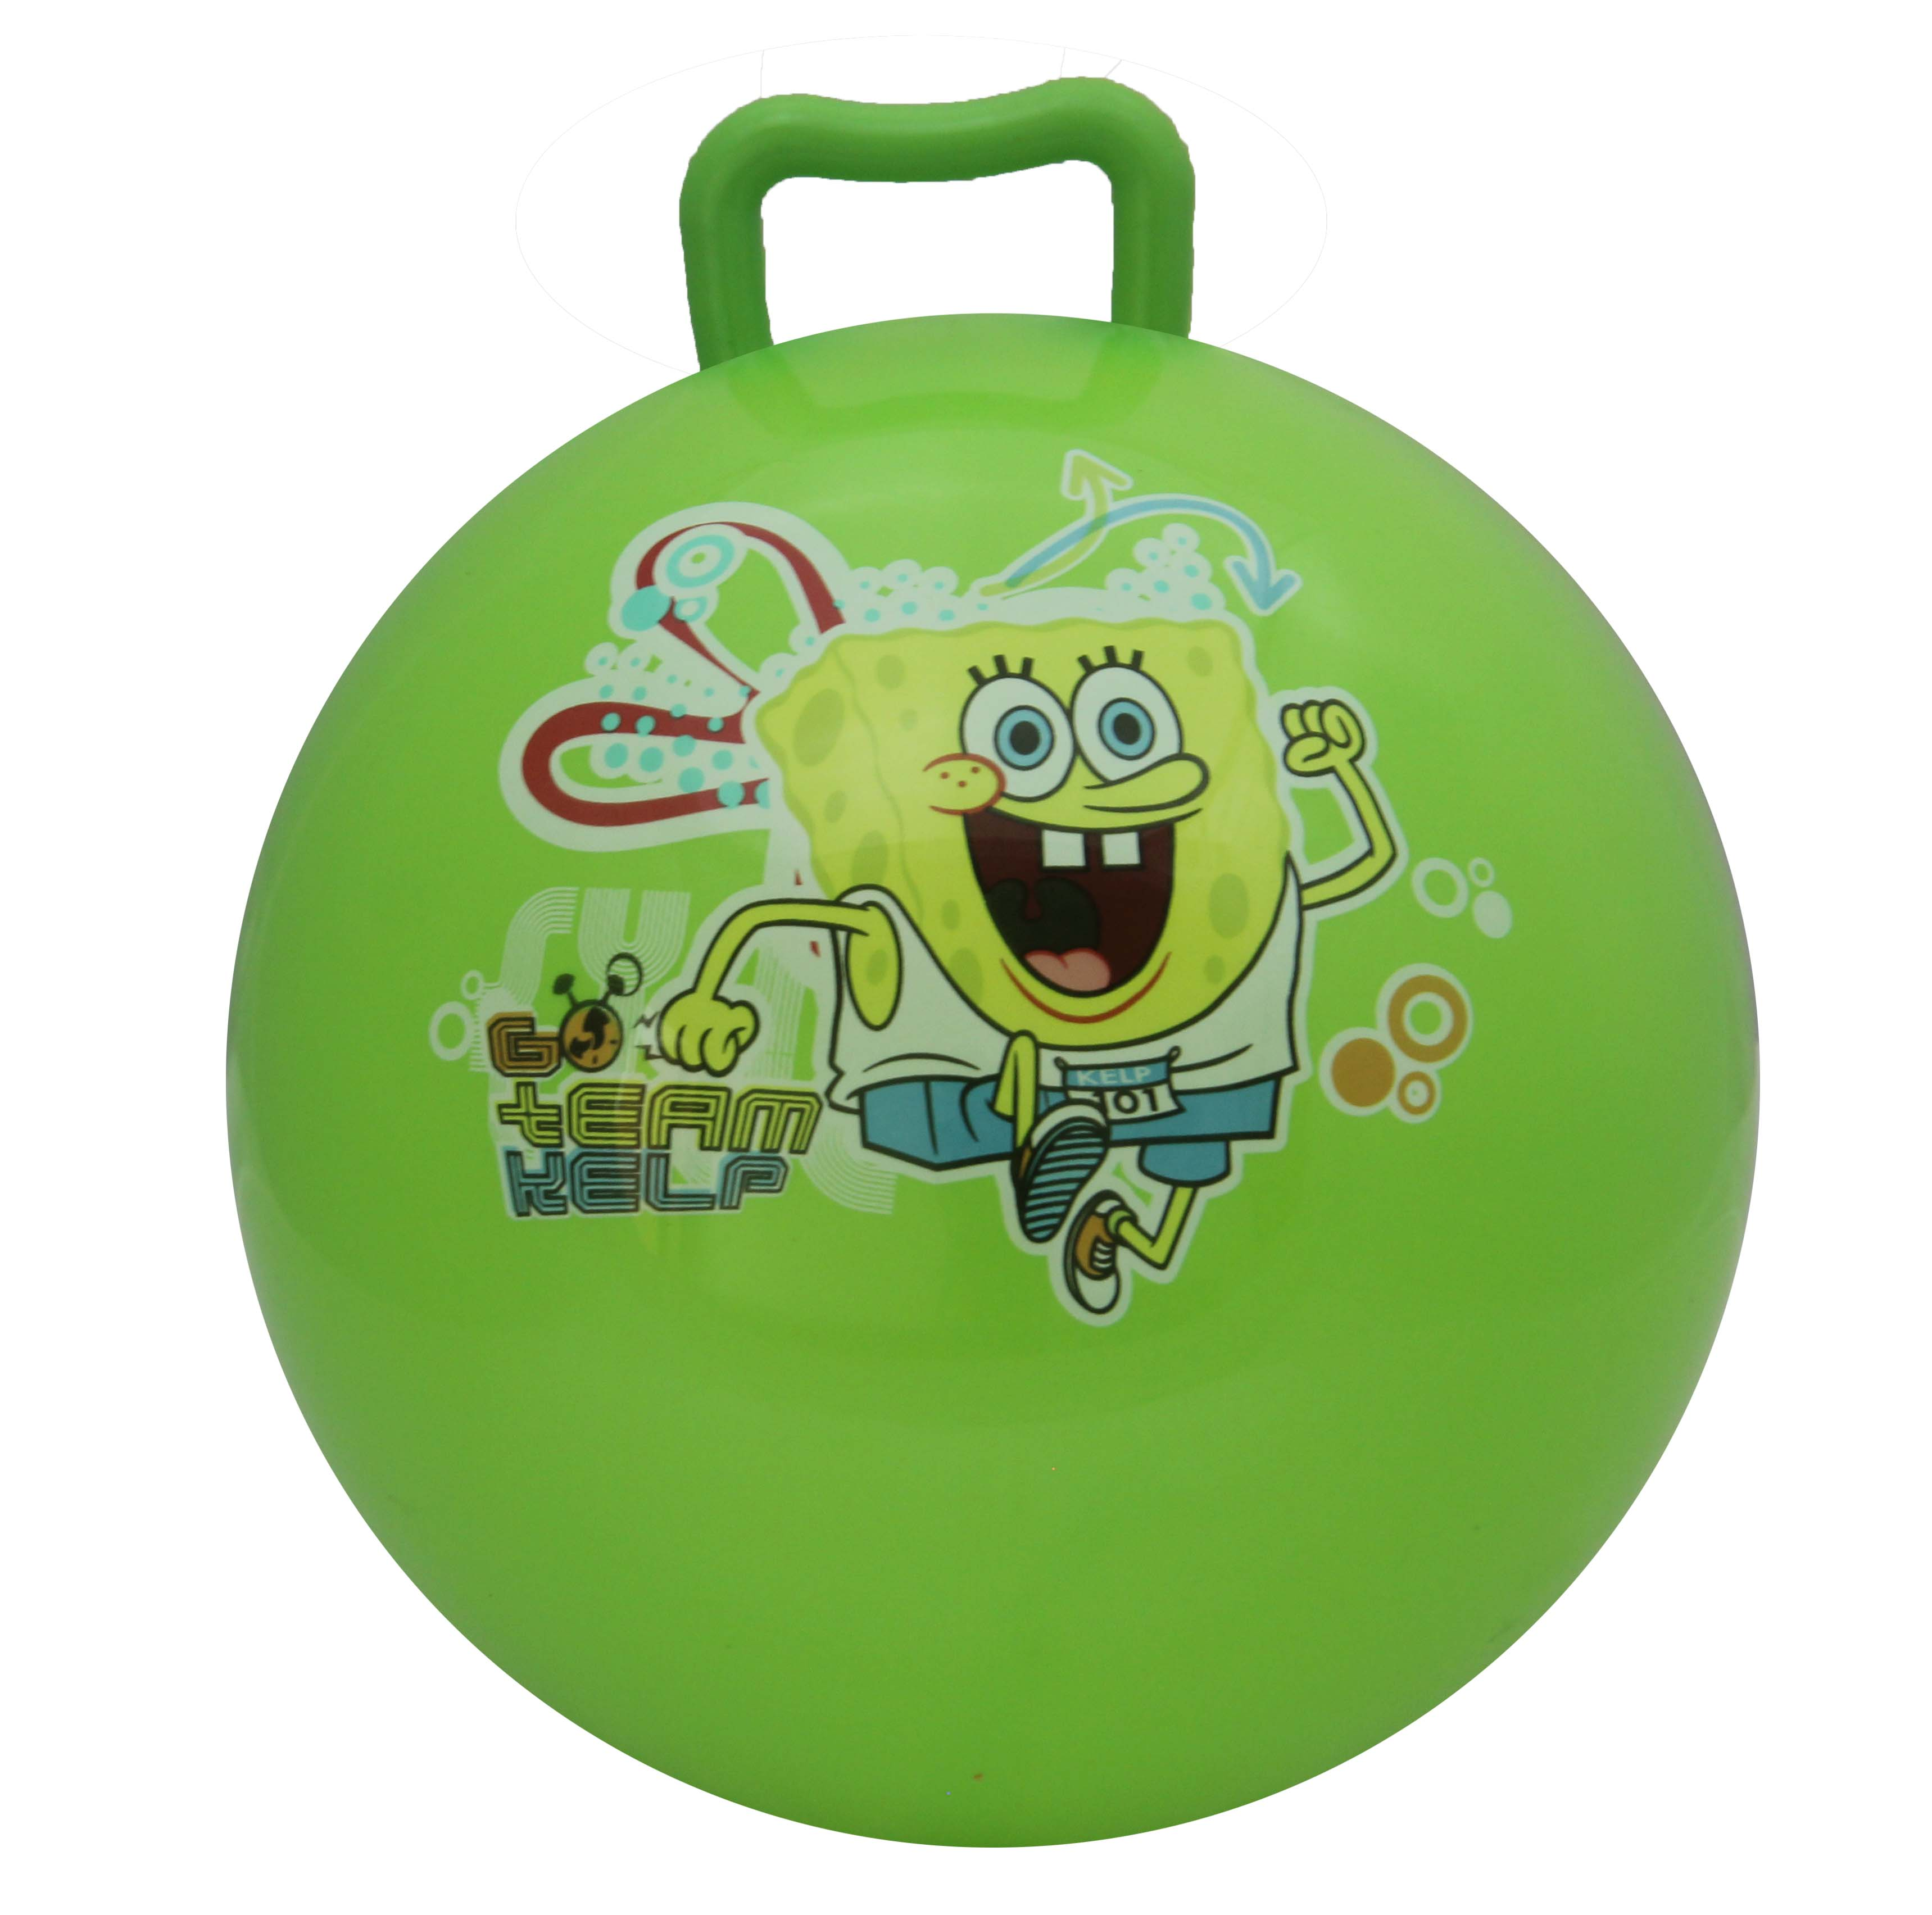 10inch High Quality & Durable Hopper Ball with Handle For Kids